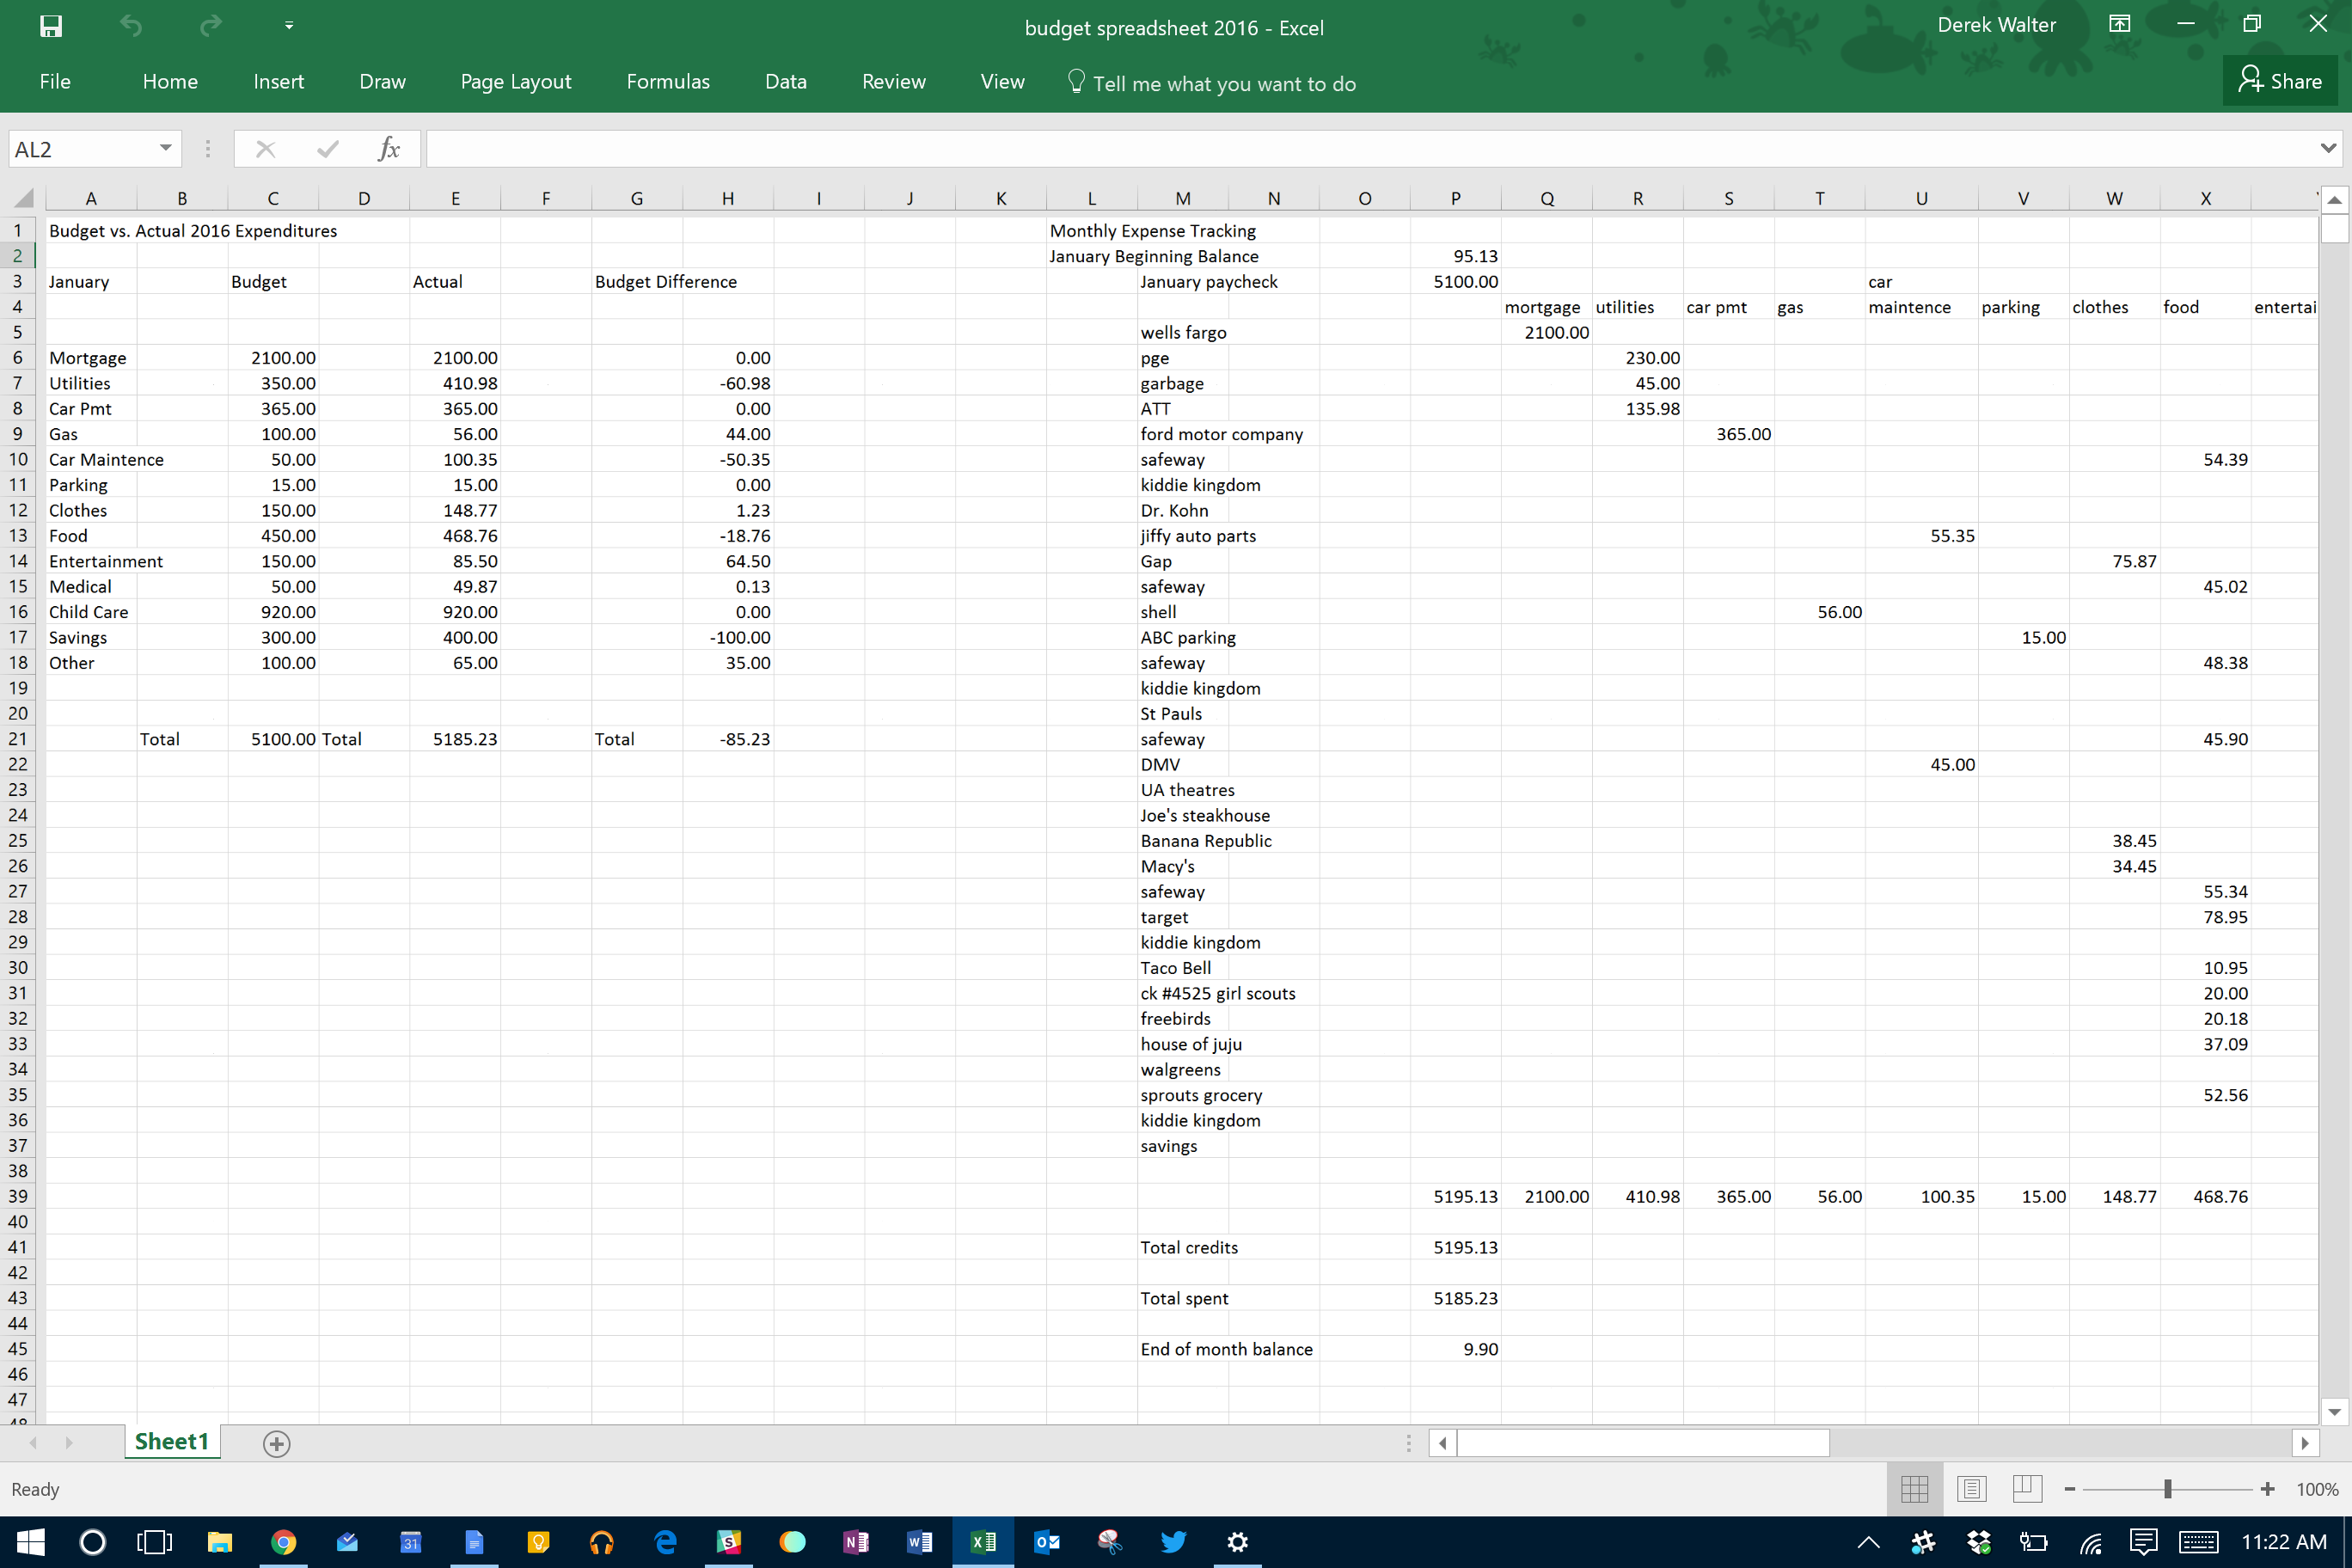 how to create a new sheet in excel